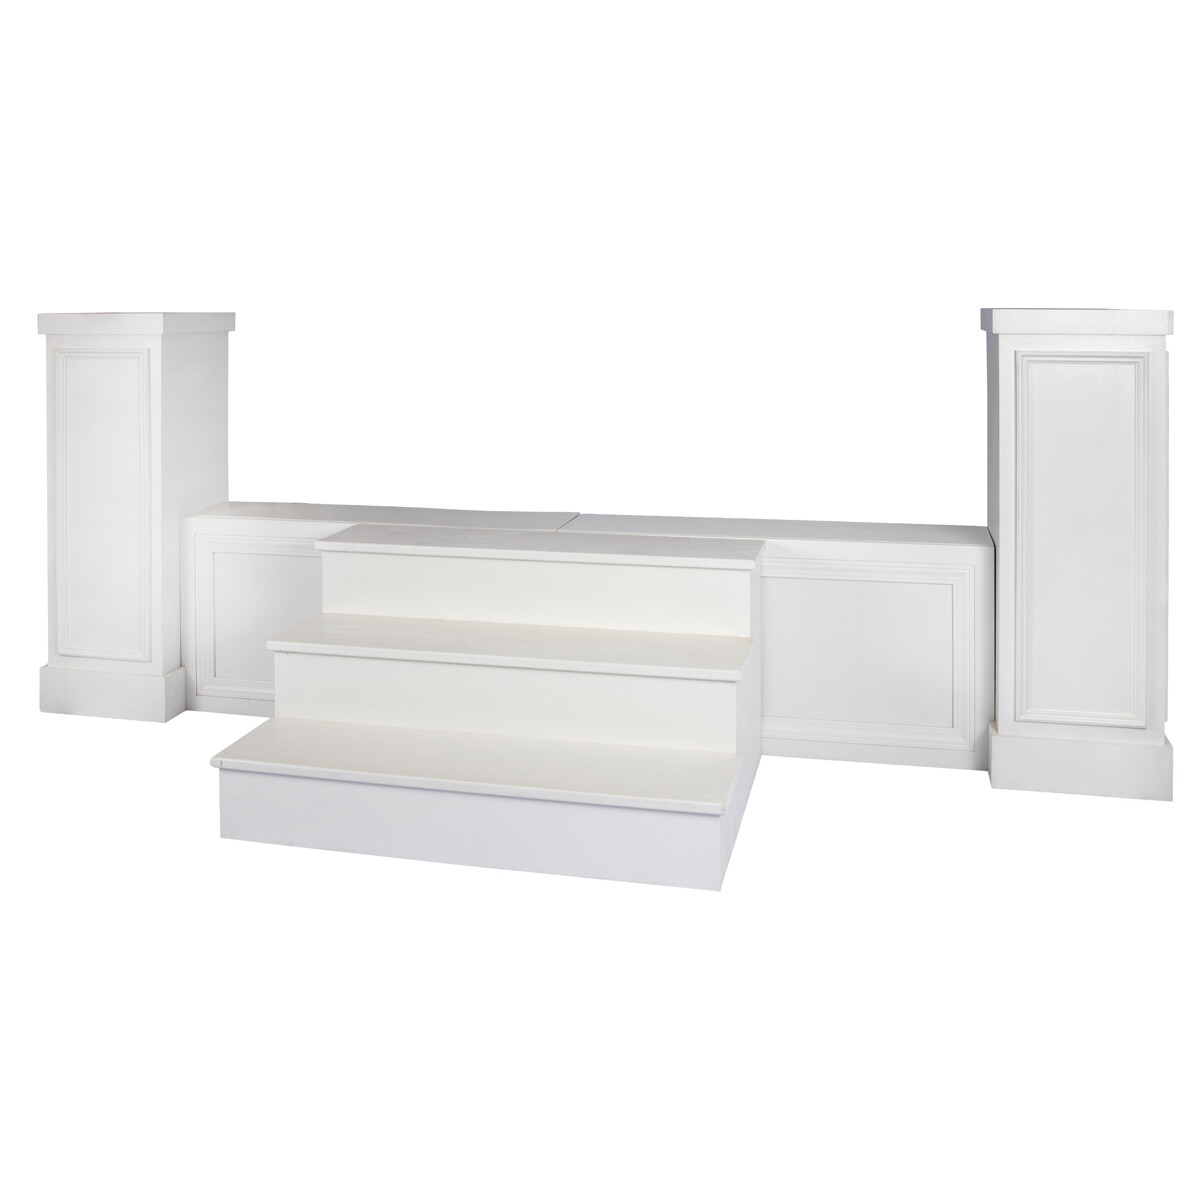 White Trim Stage Surround - Stage Front Sections